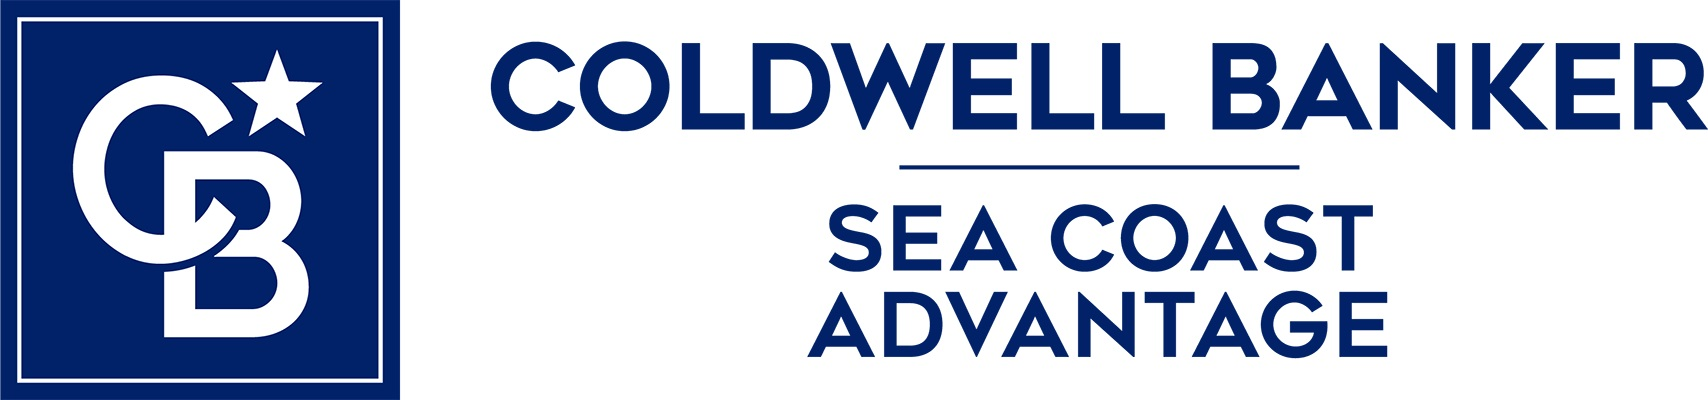 Dan Gravel - Coldwell Banker Sea Coast Advantage Realty